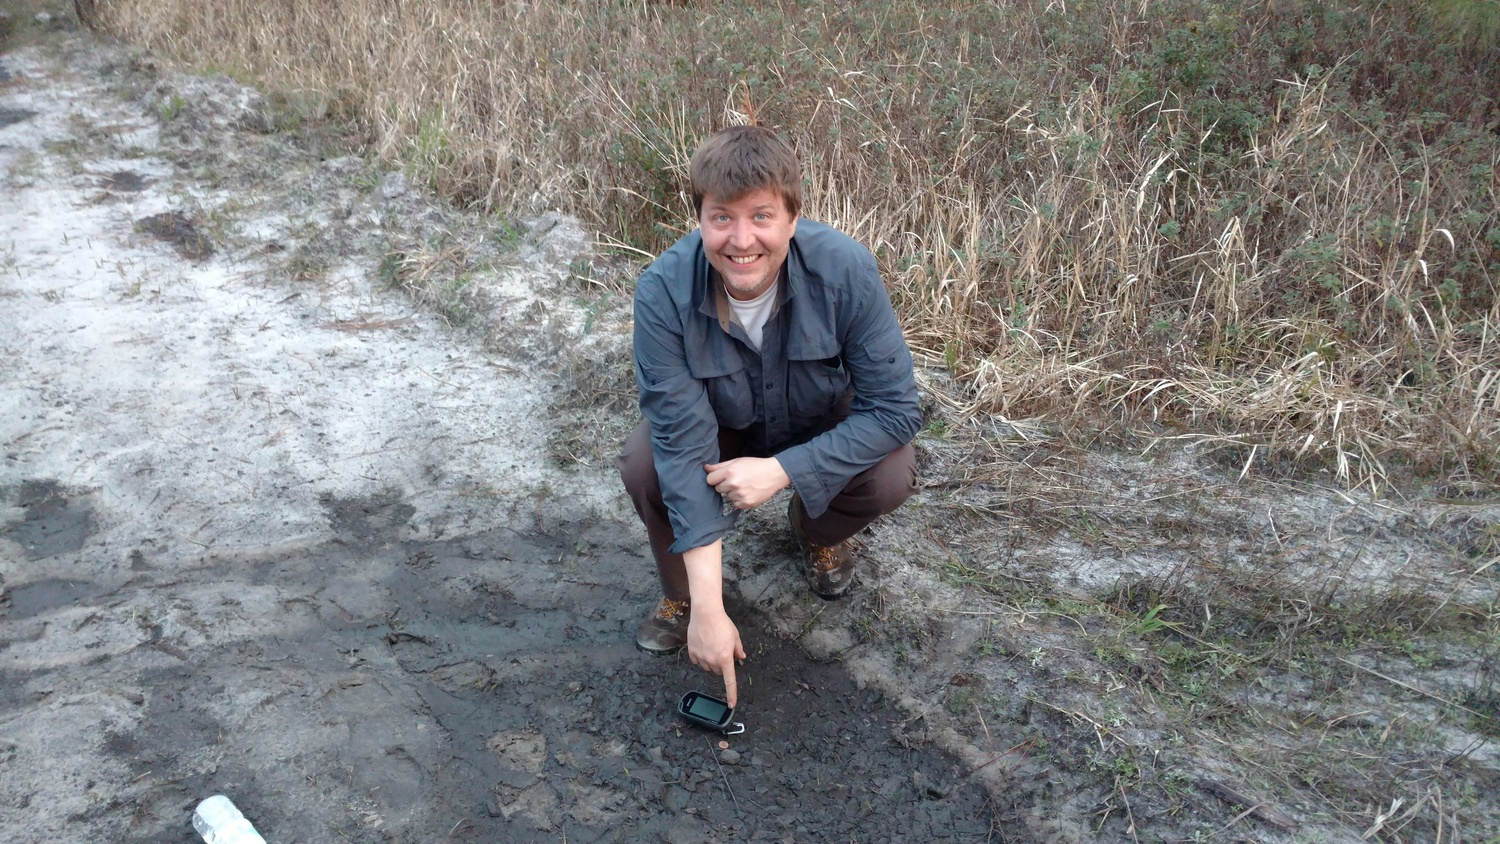 Mike's second find and it's in the mud puddle. - Photo Larry Atkins